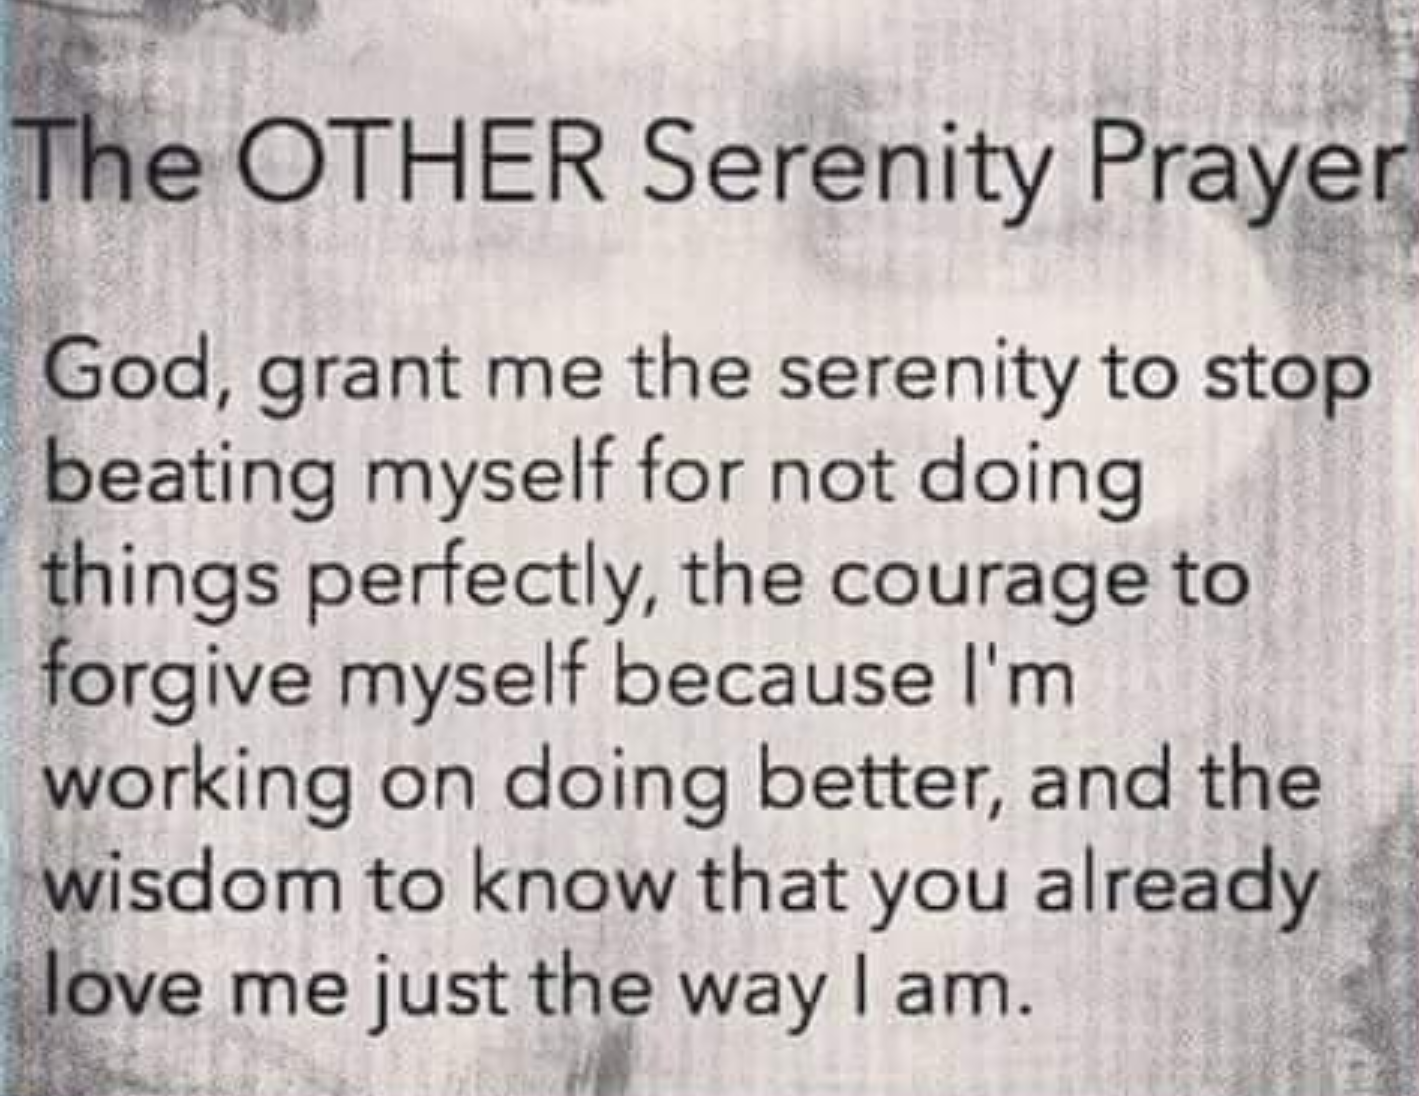 It is a graphic of Printable Serenity Prayer intended for god grant